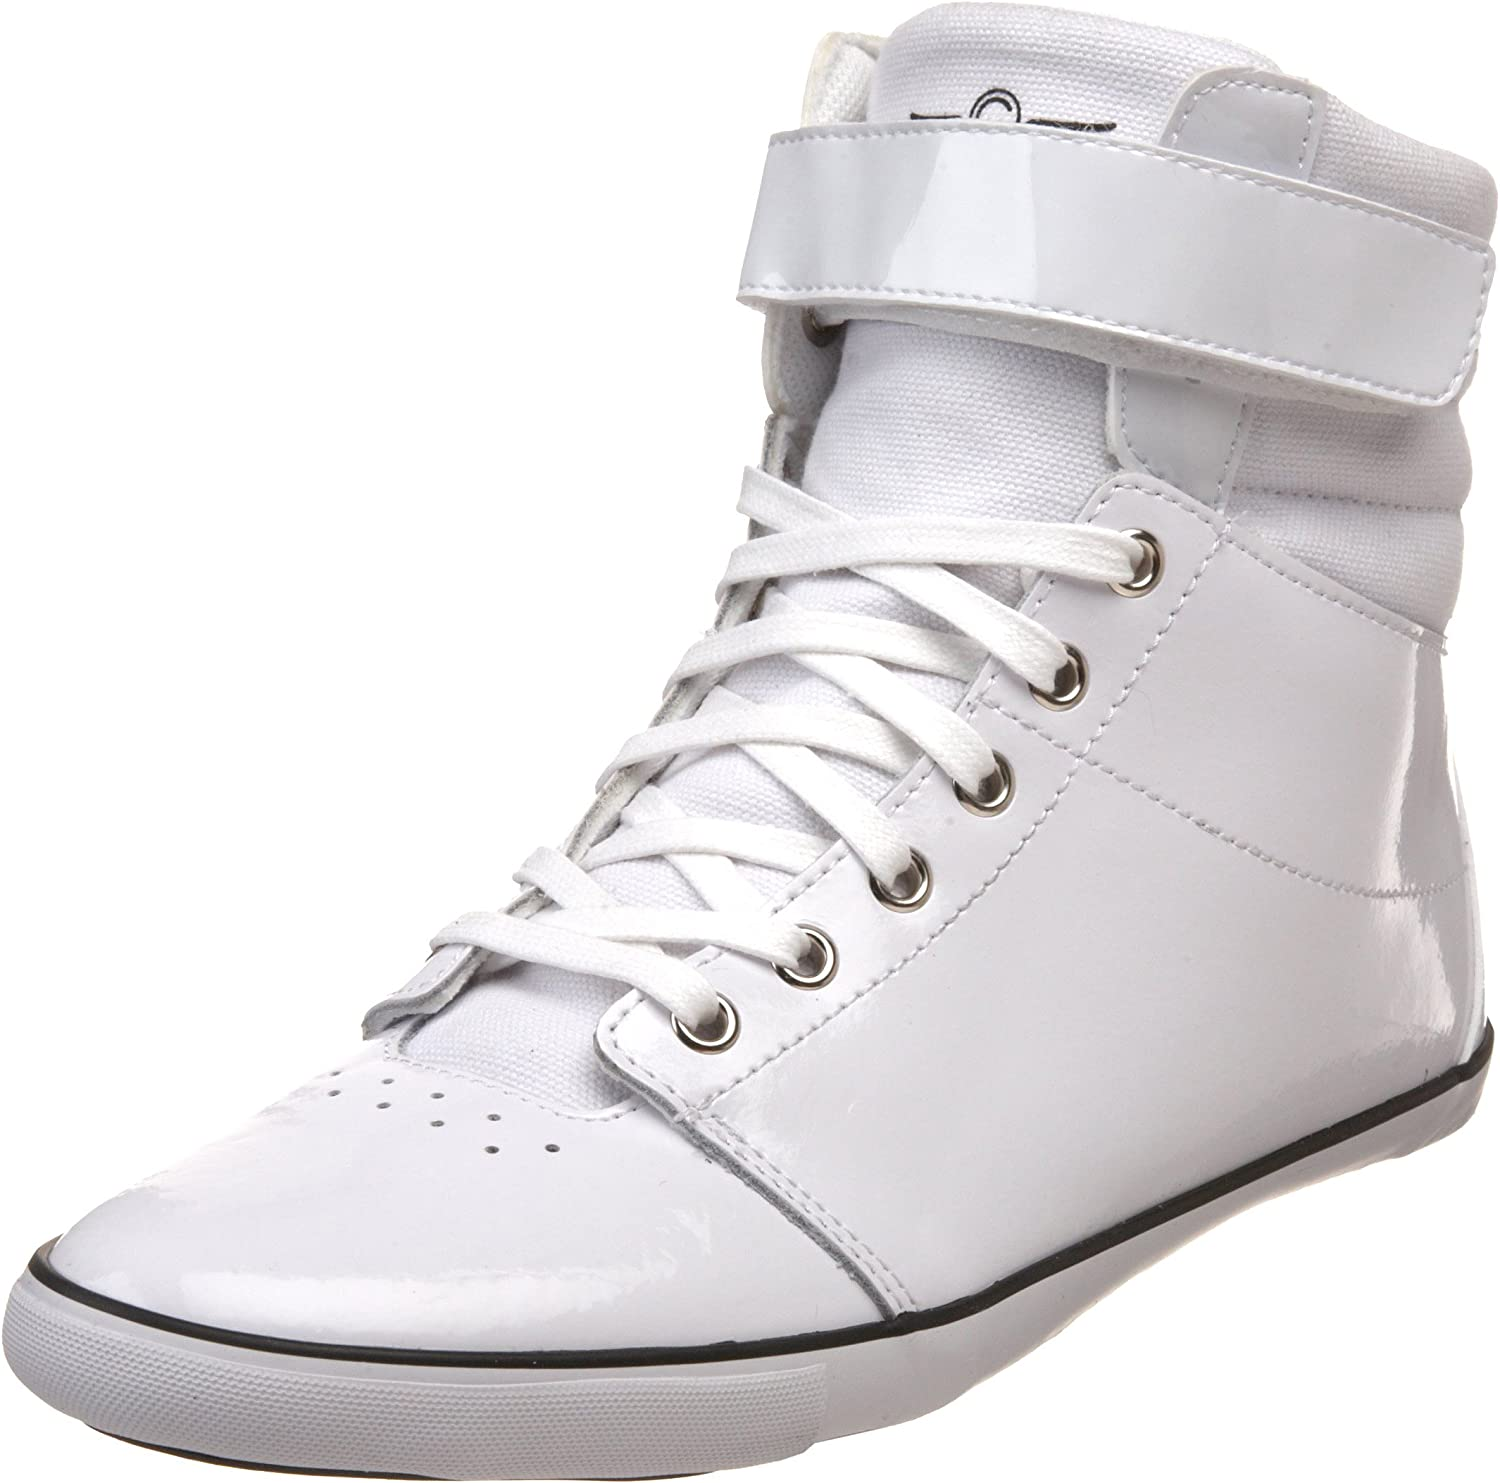 Limited time sale Creative Recreation Women's Ranking TOP11 Sneaker Giancana